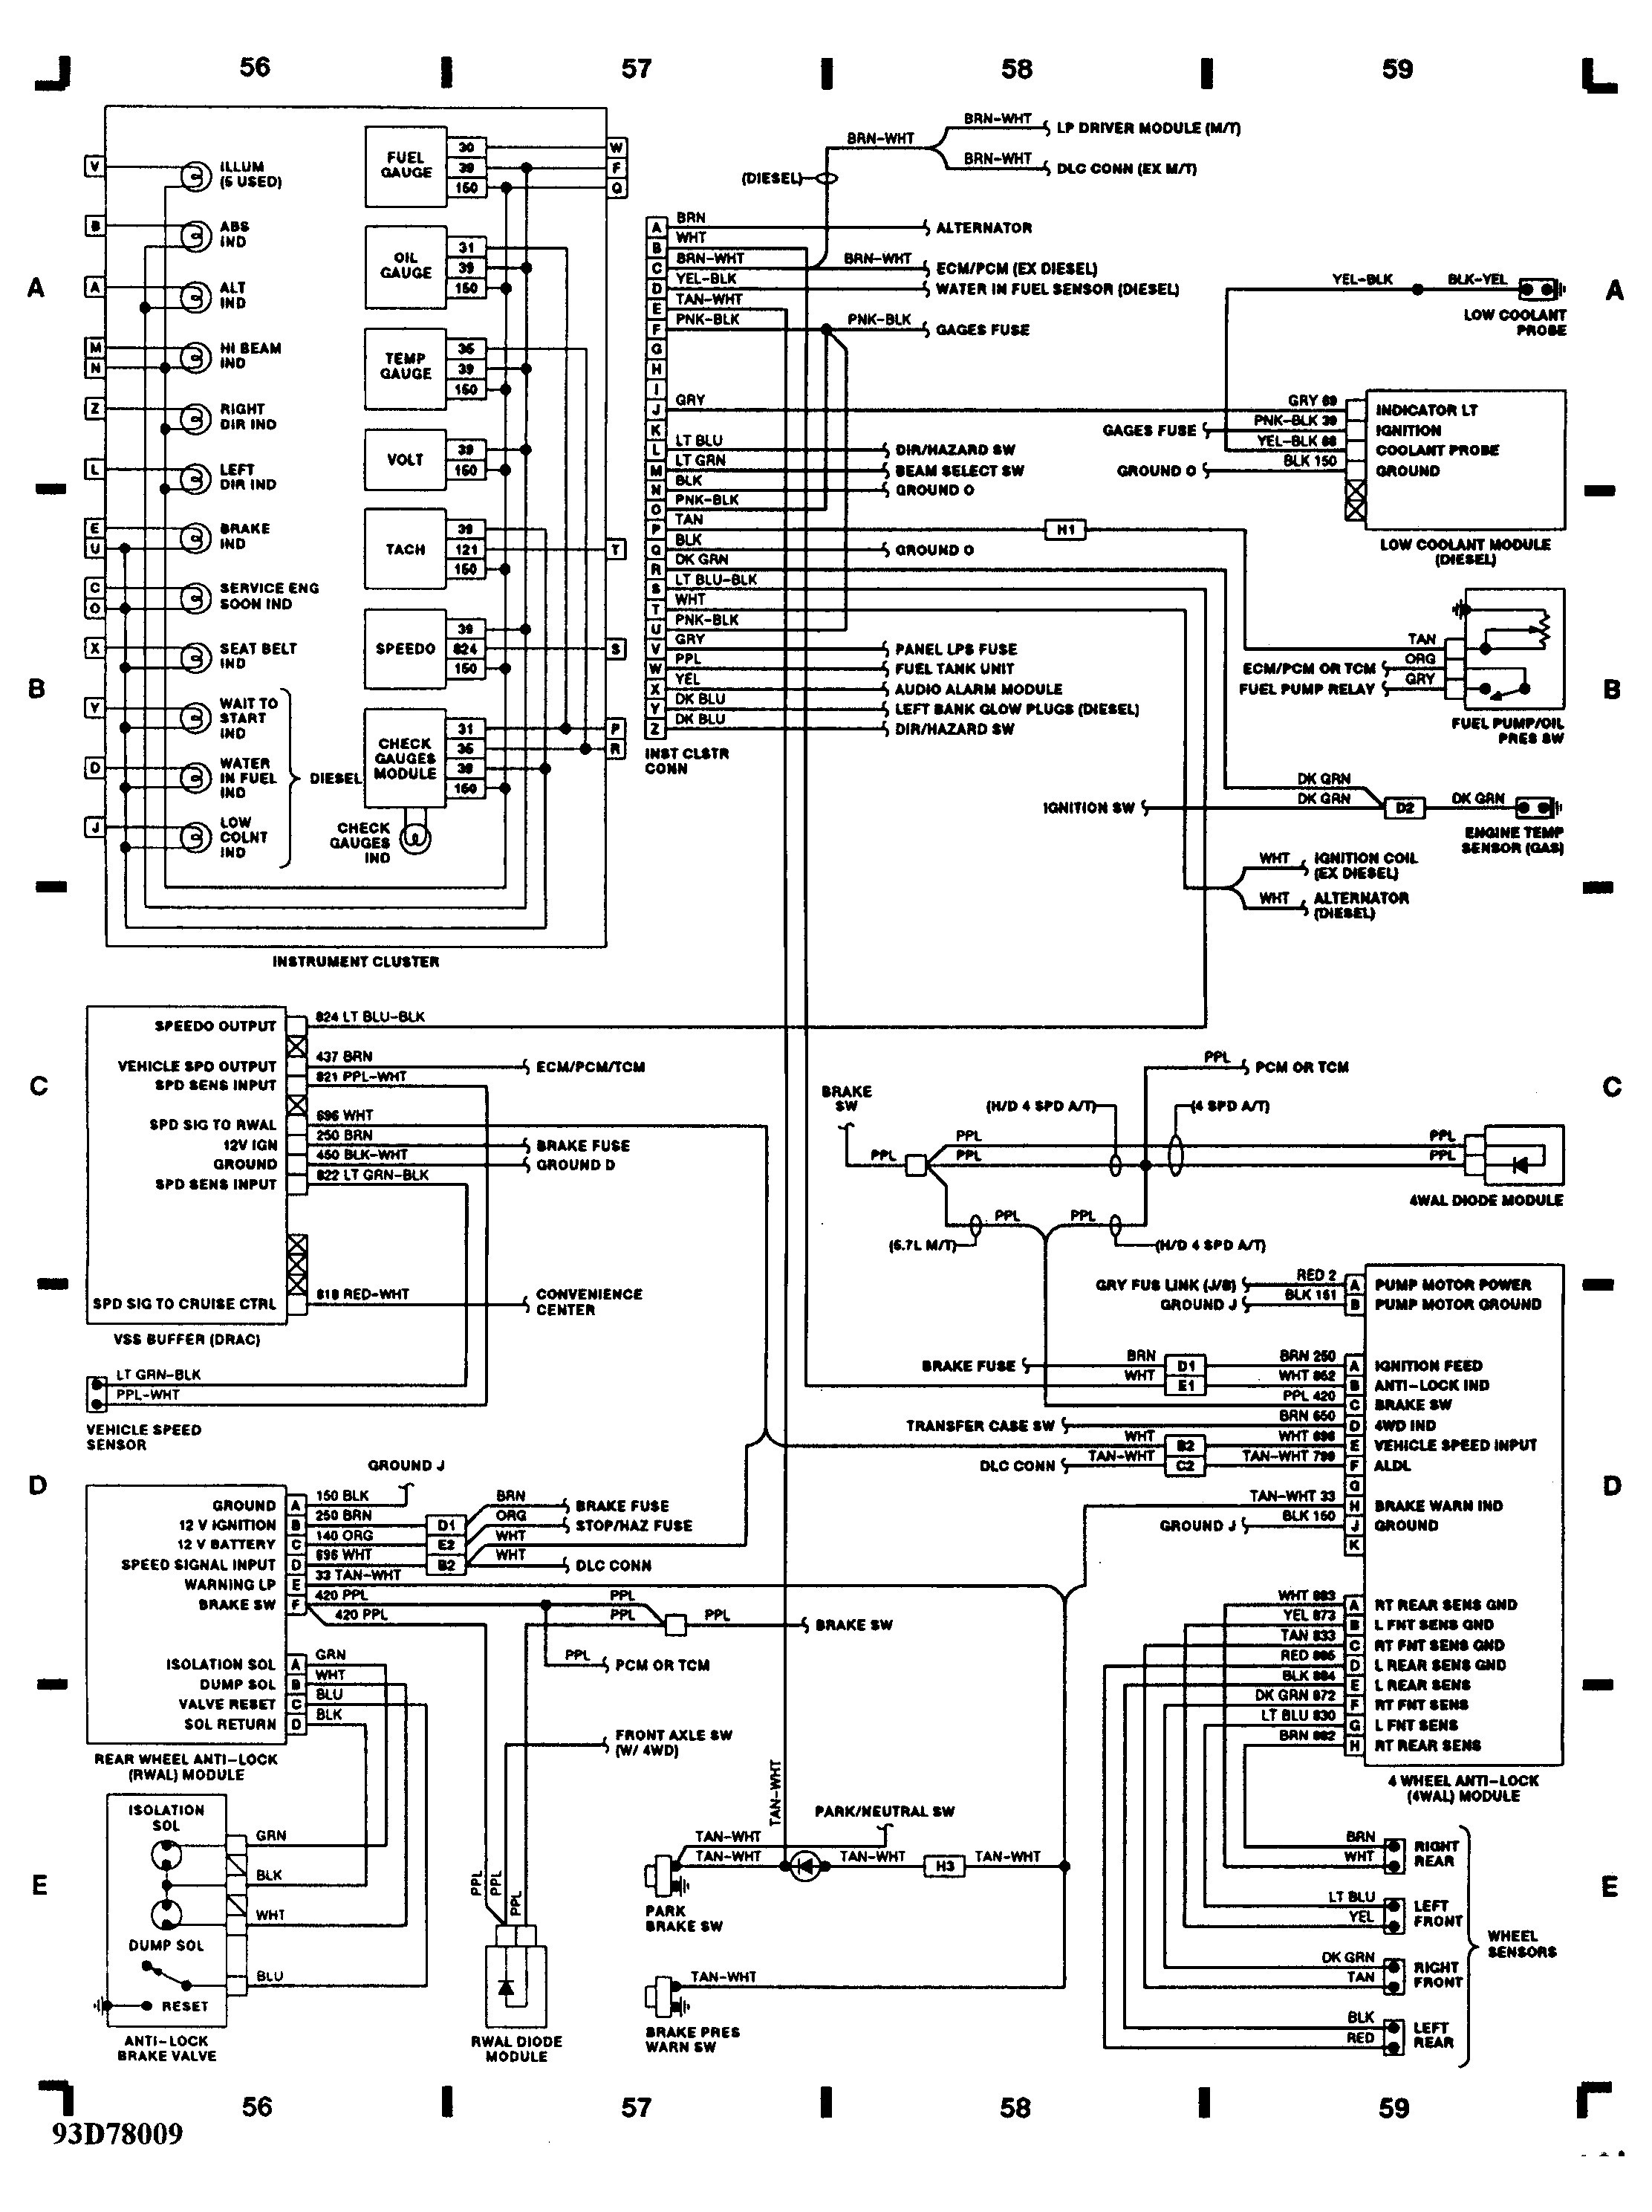 1998 Blazer Engine Diagram Wiring Library Chevy S10 5 7 Vortec 4 3l